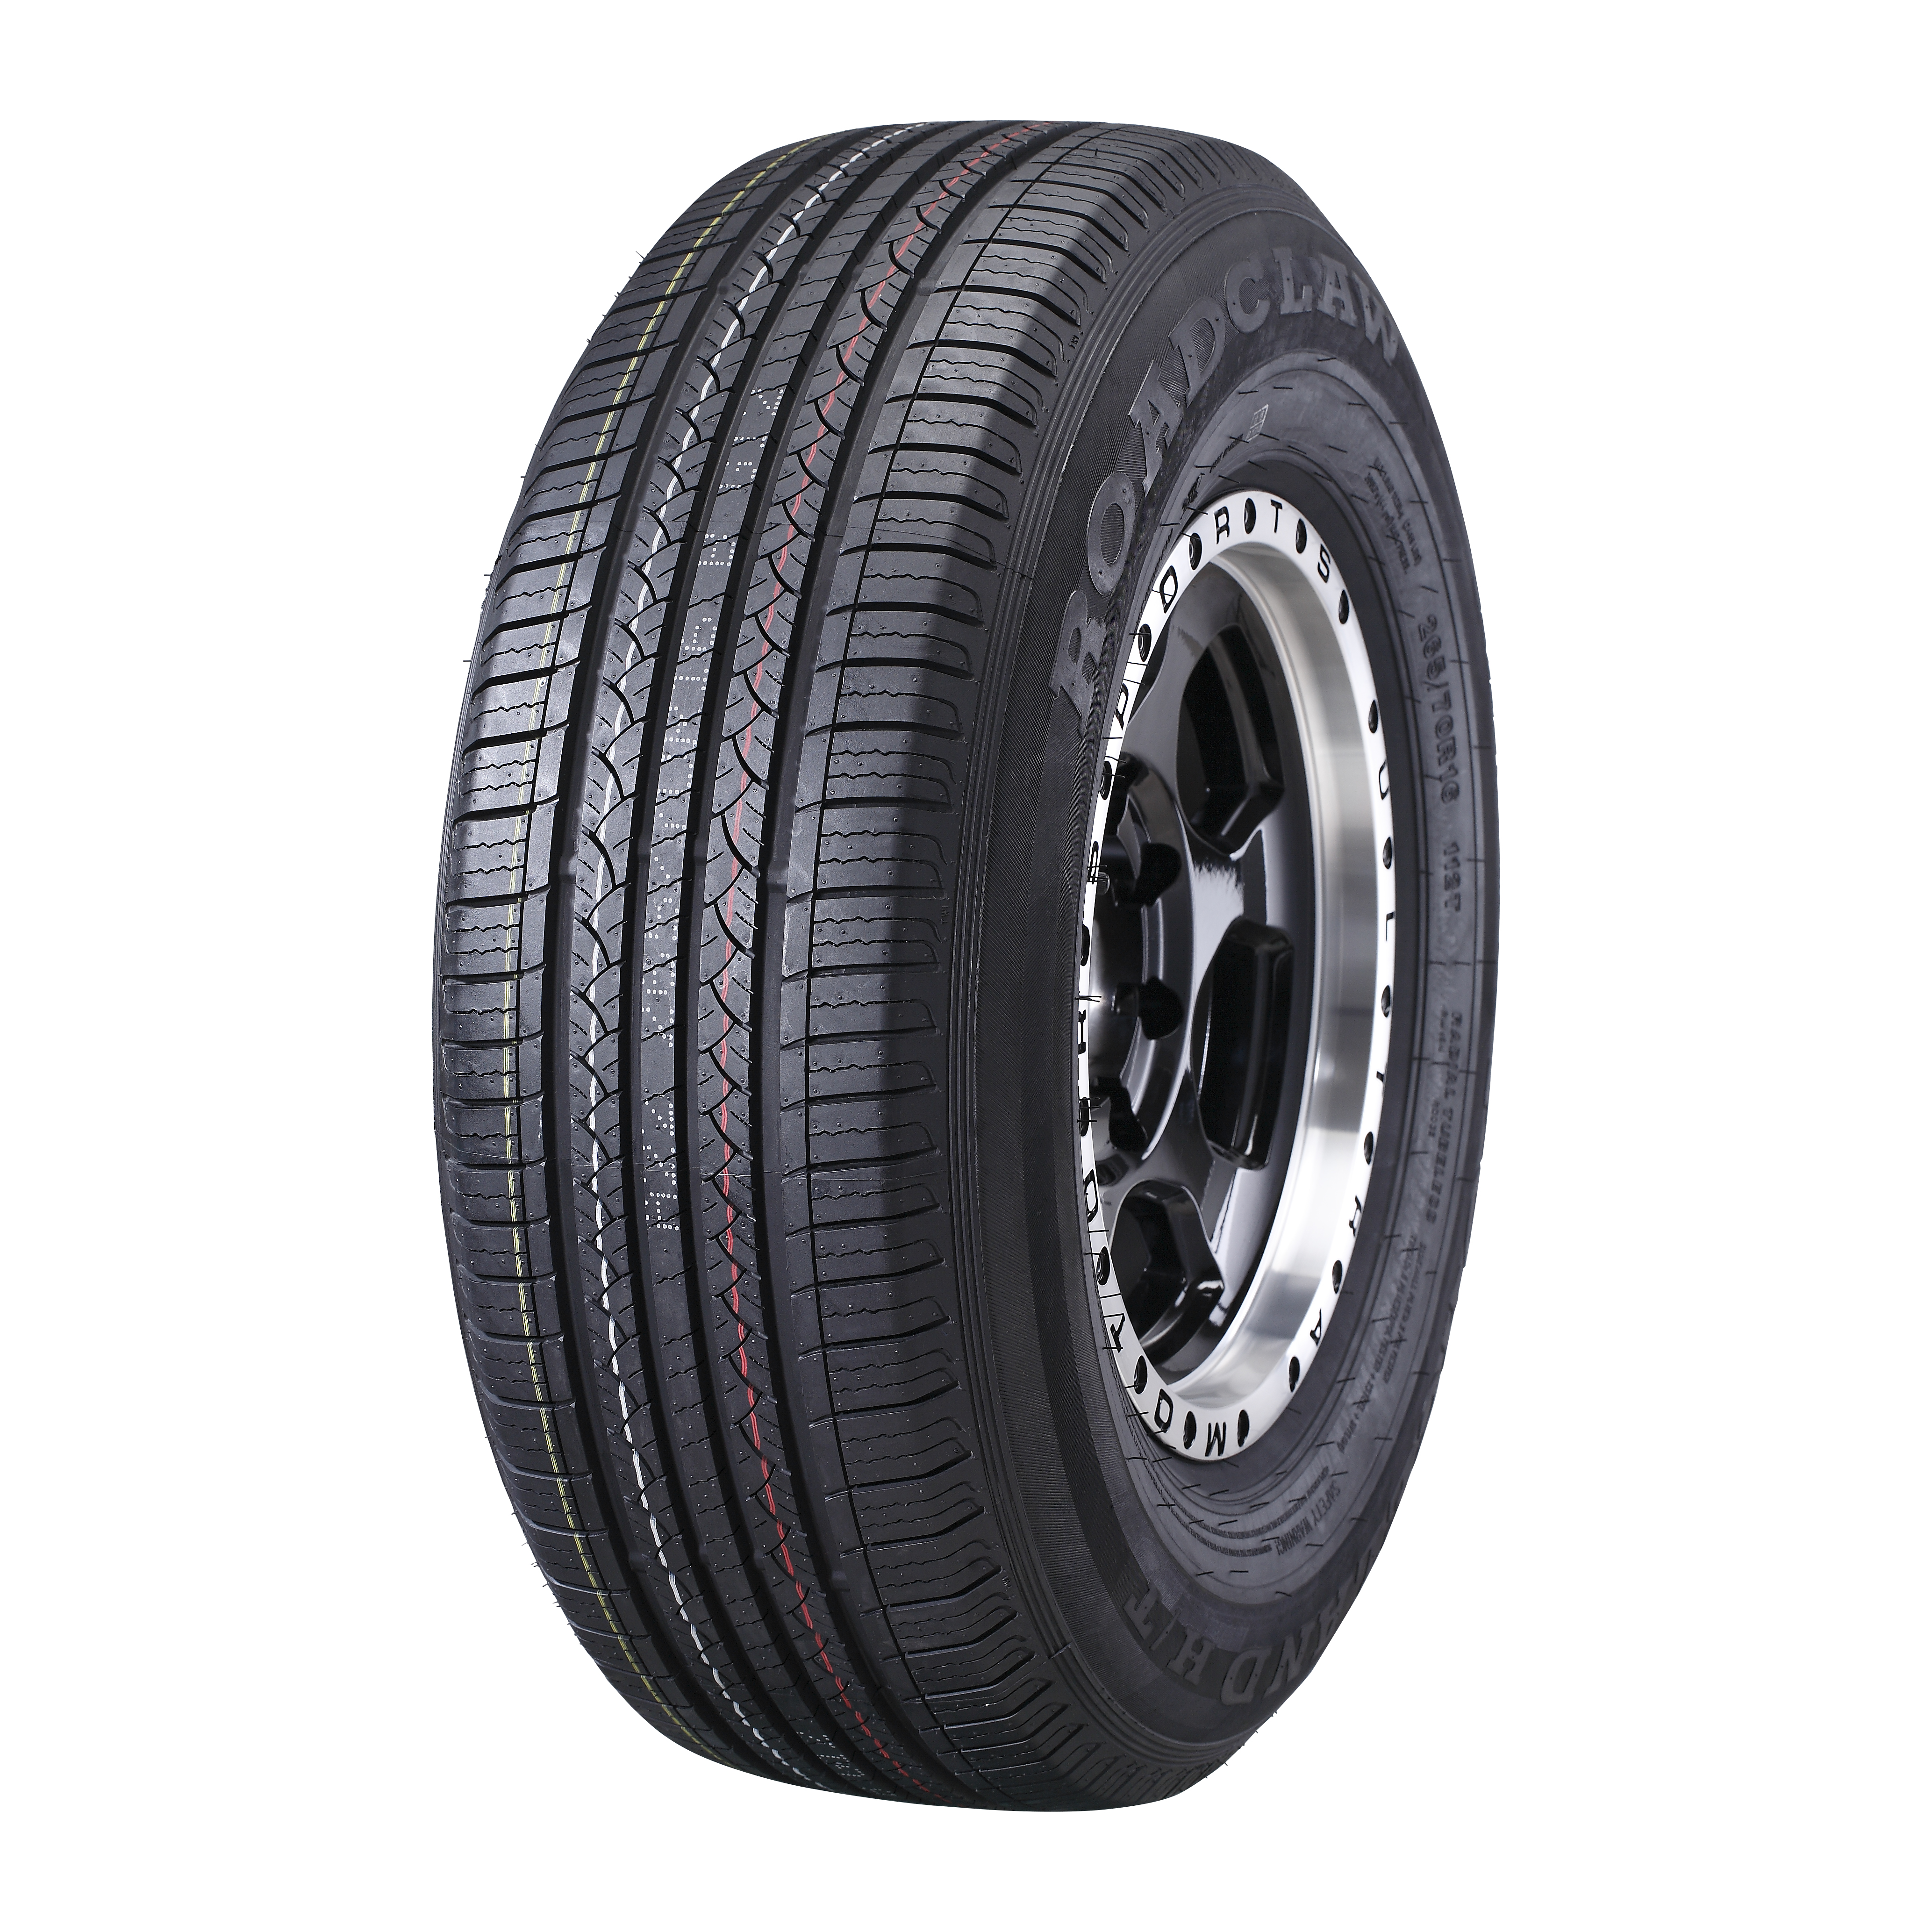 Roadclaw Forceland H/T 235/60R16 100H